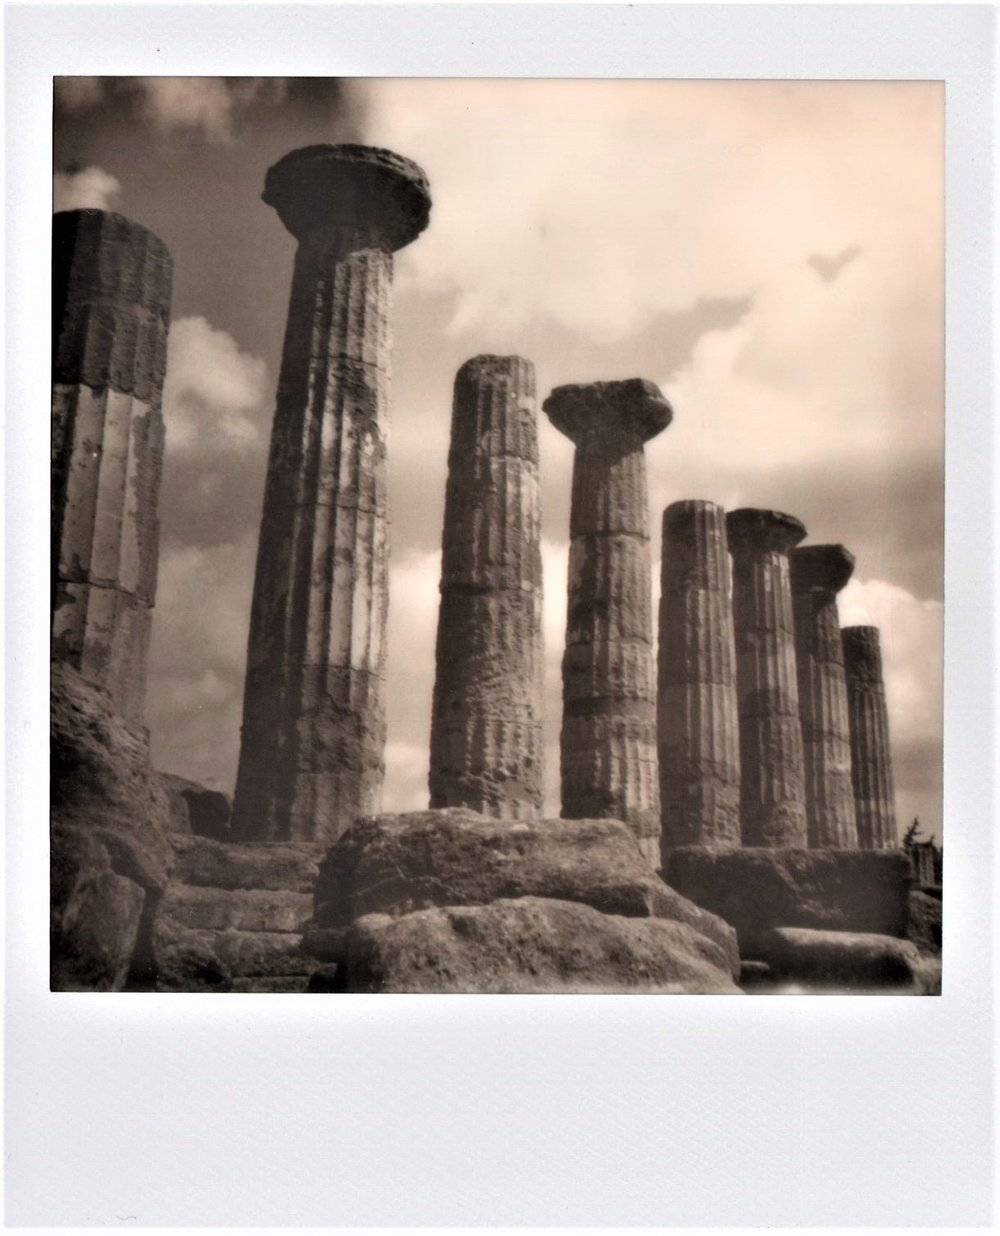 Time | SX70 | Impossible Black & White | Marina Inì